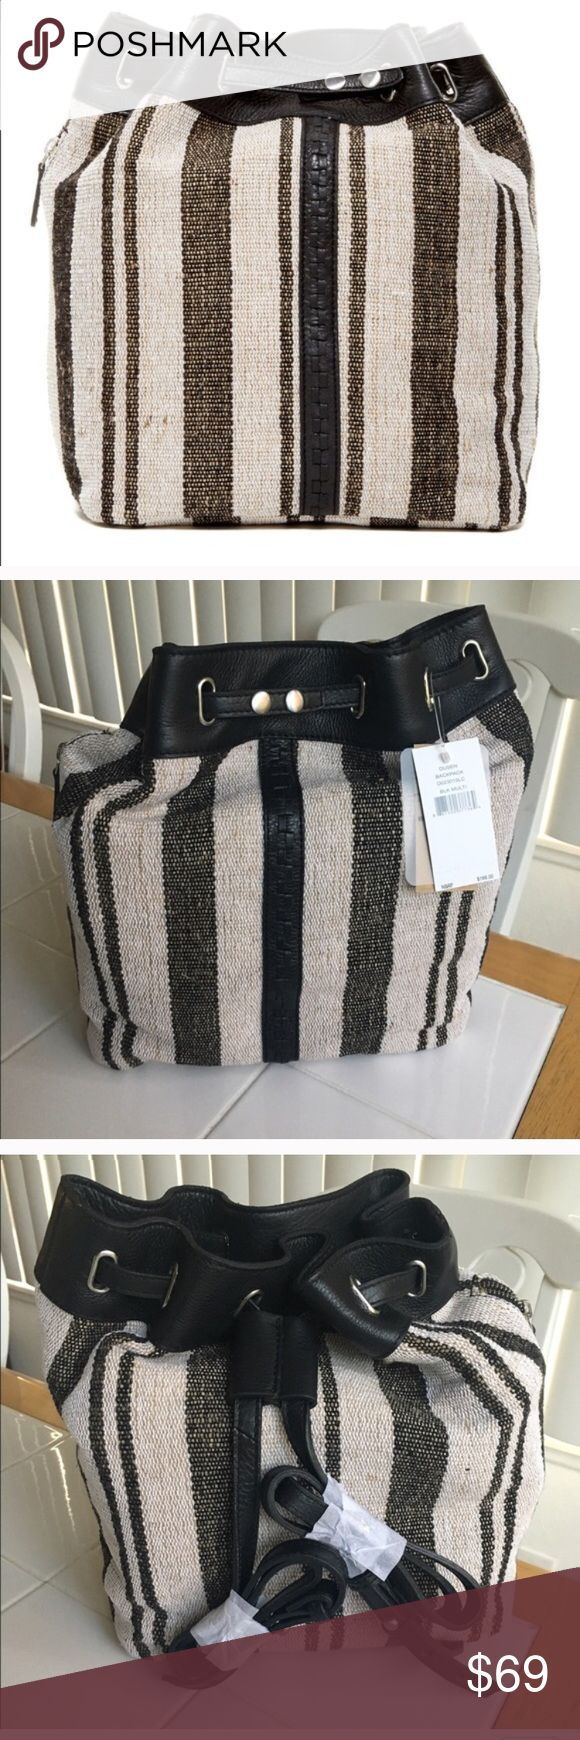 FLASH SALE 💜Kelsi Dagger backback- NWT Jute and Cotton exterior. This bag has the greatest texture. 12x12 roomy. Authentic Leather trim and drawstrings. Versatile backpack styling makes for a great travel bag. No trades. Kelsi Dagger Bags Backpacks